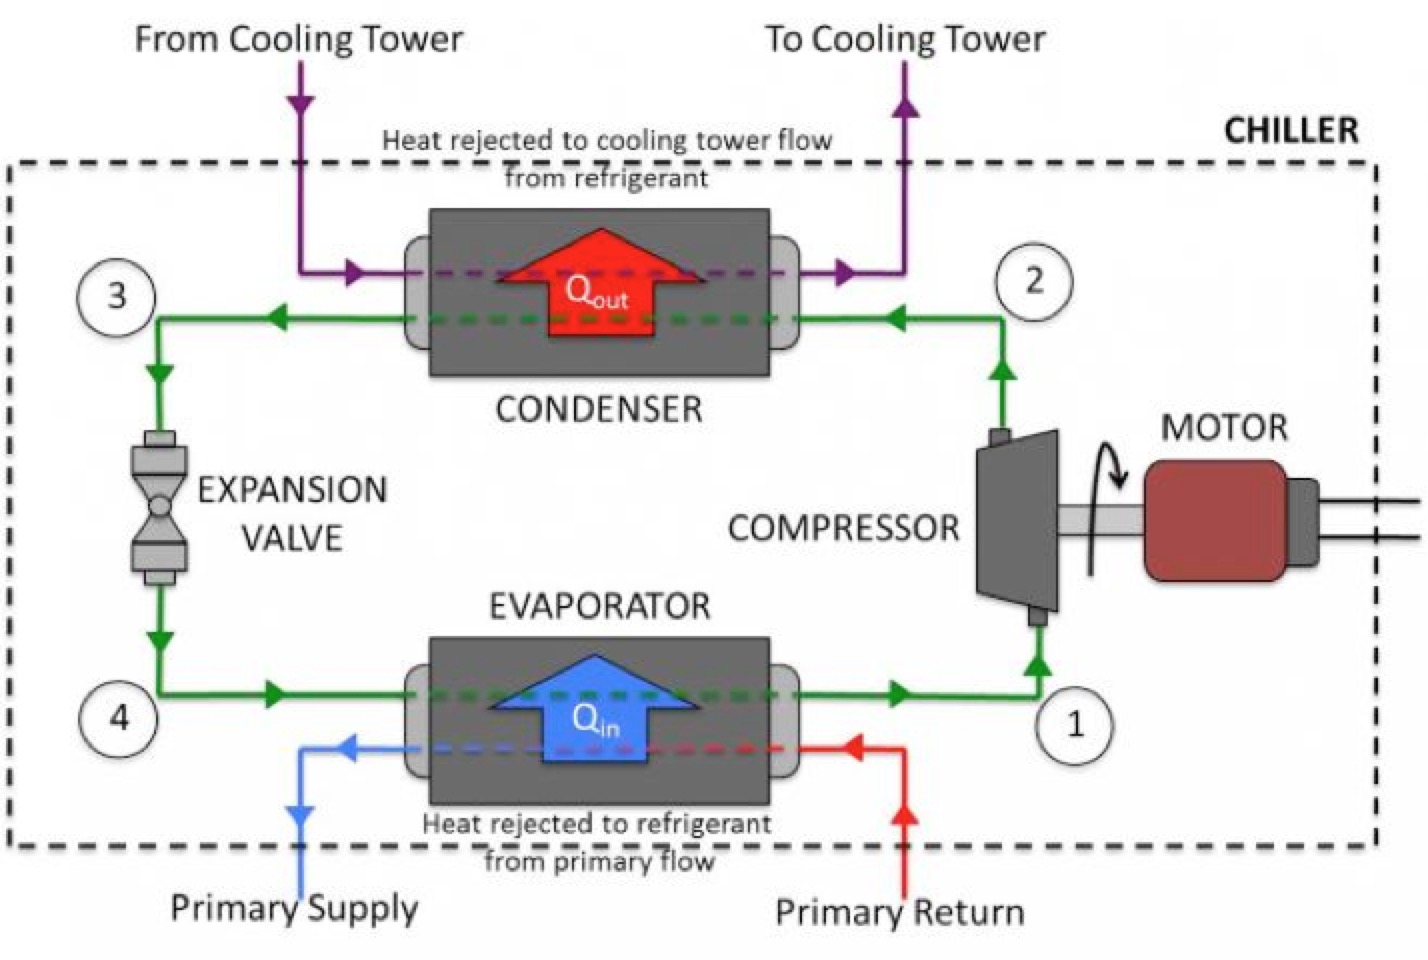 hight resolution of how is water chiller working hlk chiller industrial chillers water cooled chillers air cooled chillers scroll chillers and screw chillers manufacturer